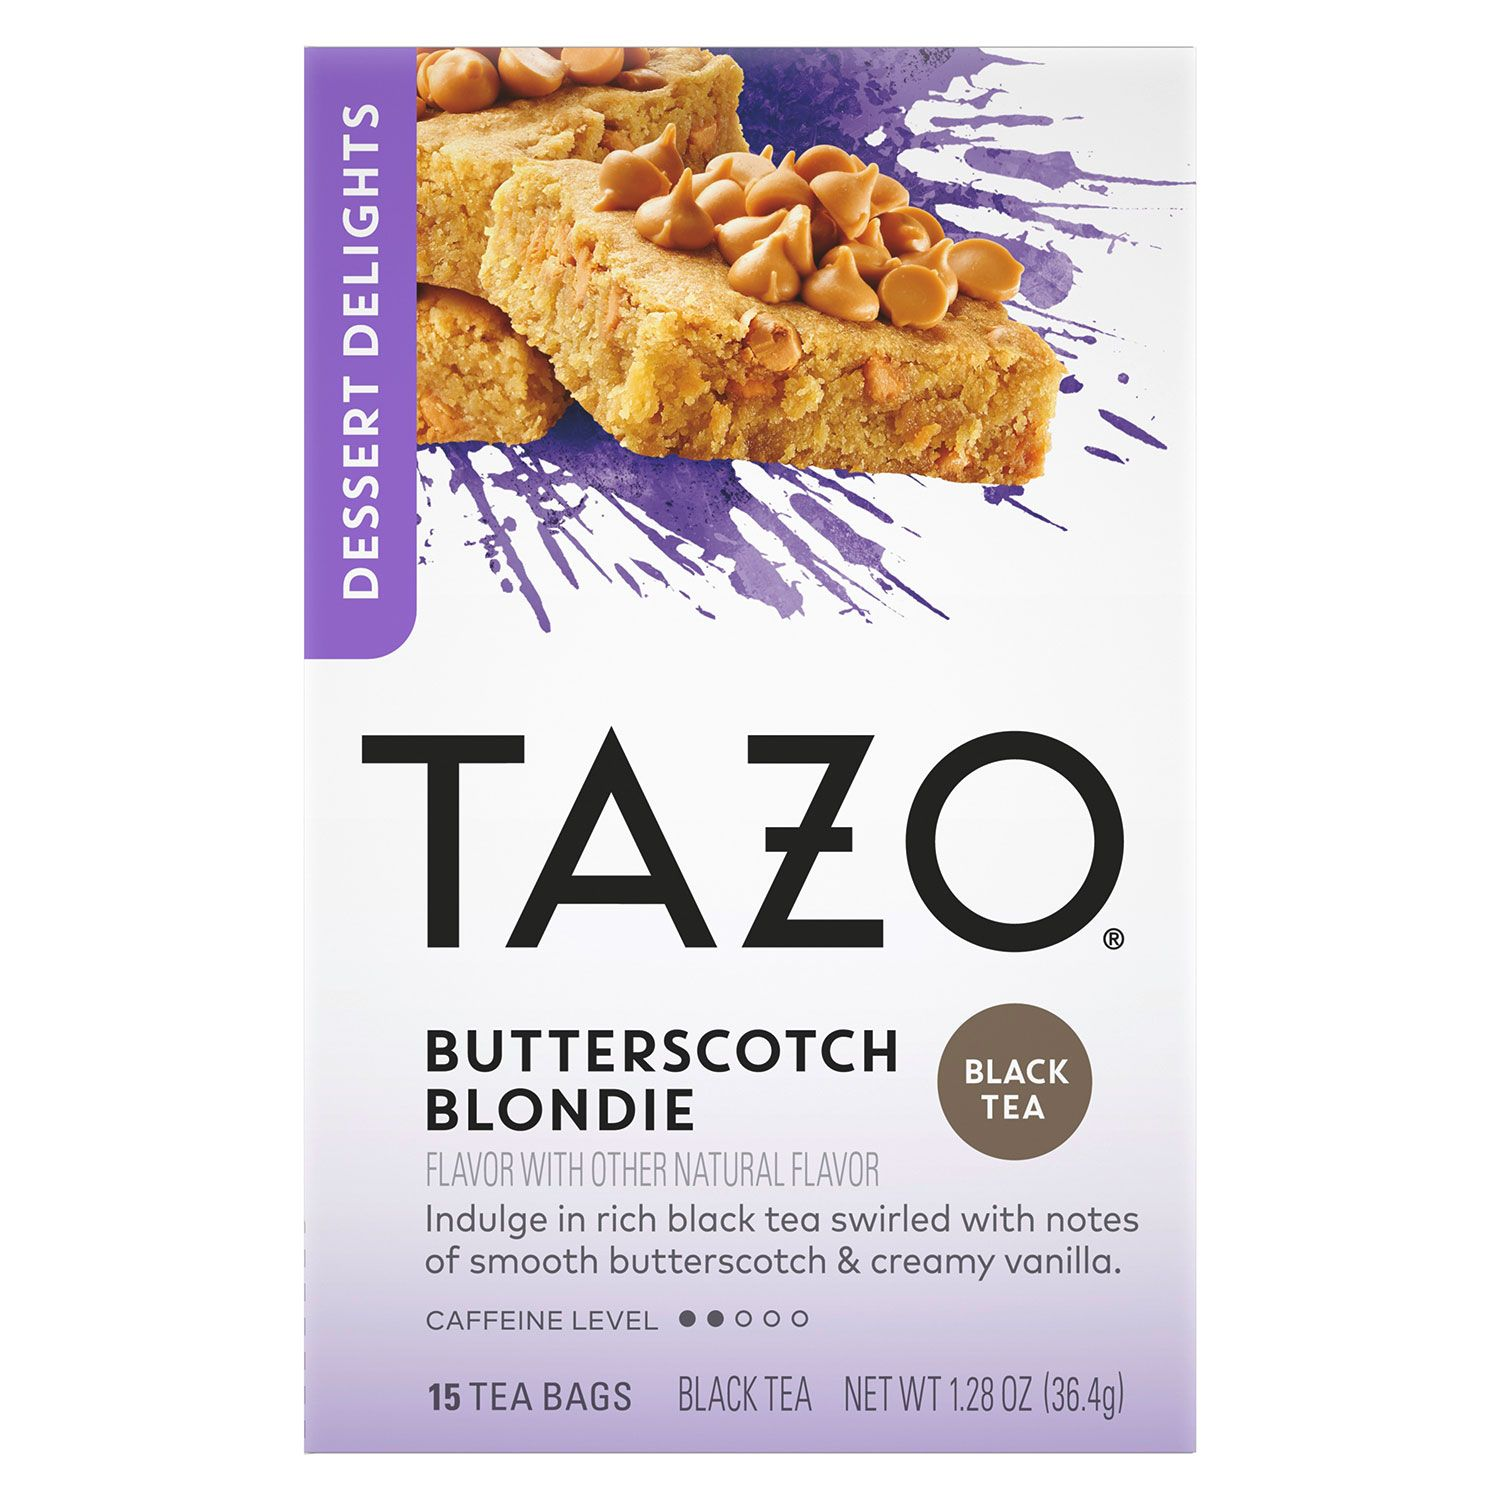 This Tea Is Going Viral On Tiktok Because It Tastes Exactly Like Dessert In 2021 Butterscotch Blondies Hot Desserts Tazo